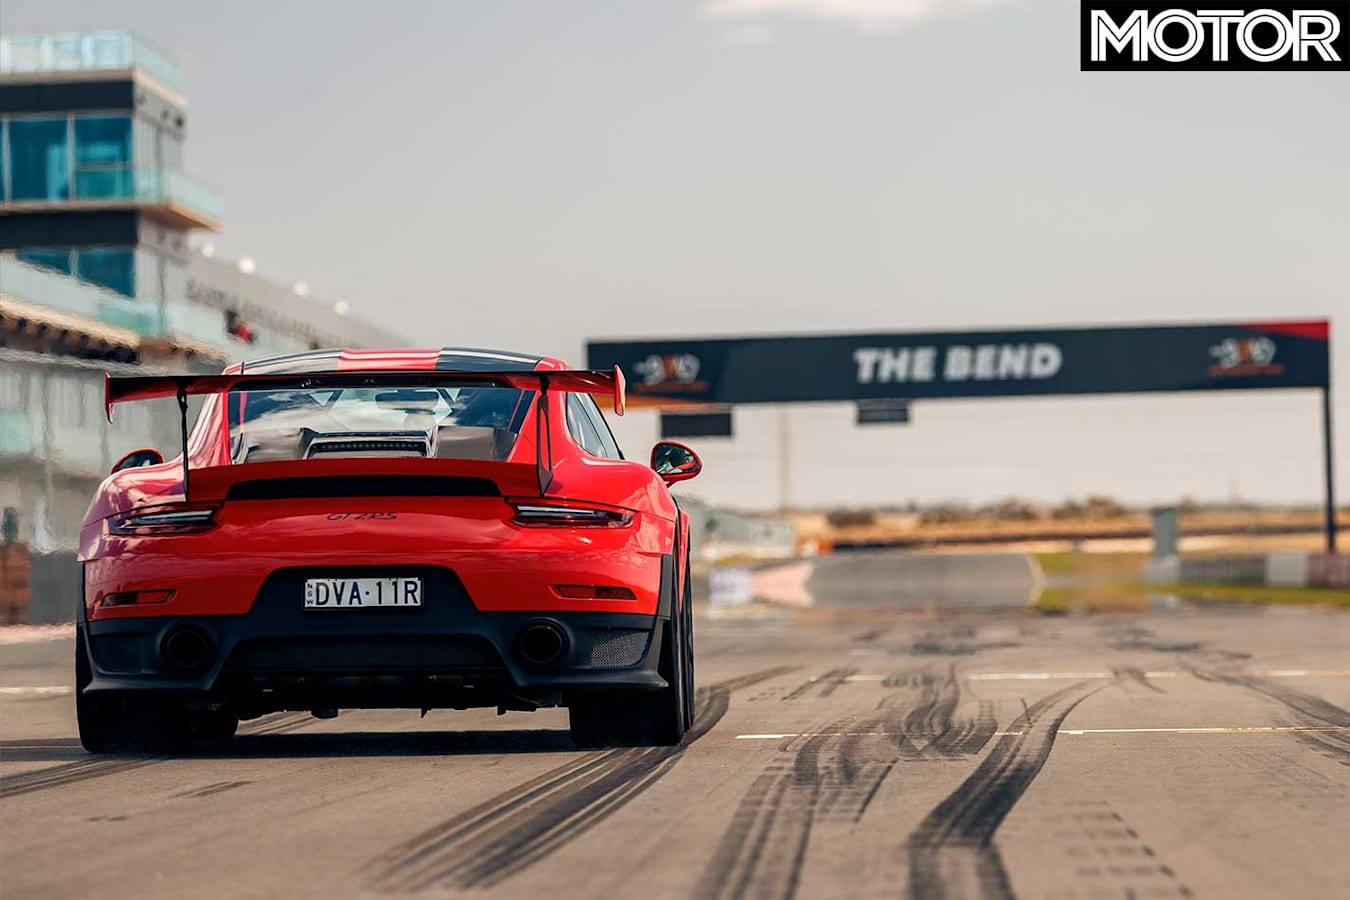 Opinion 2019 Performance Car Of The Year Winner Explained 911 GT 2 RS Rear Jpg